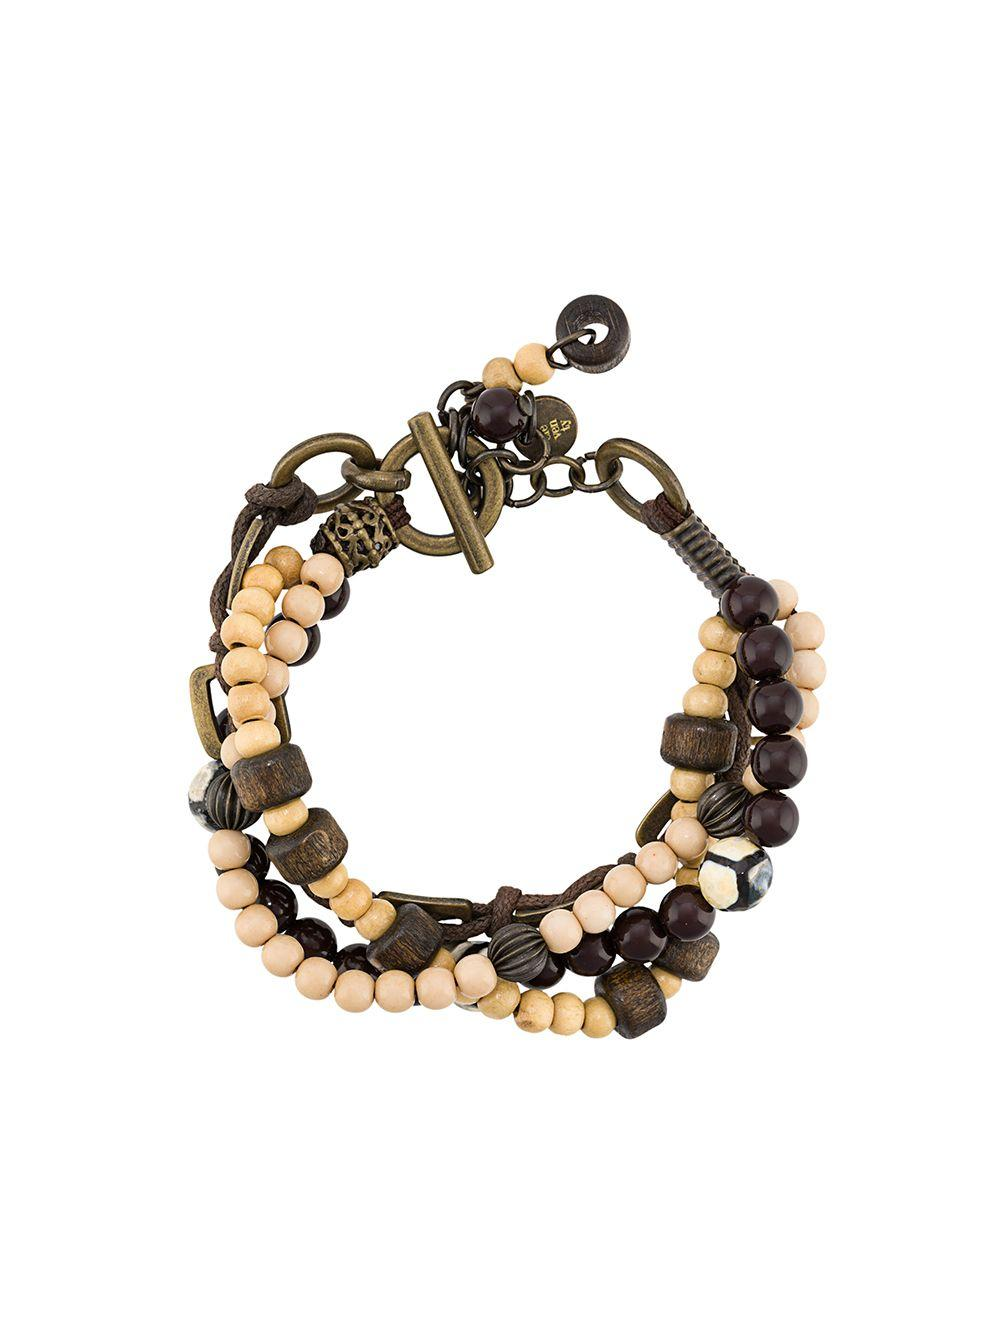 African Trade Bead Artisan Jewelry Black Spinel Black Onyx Bracelet and 24k Gold Vermeil Gold Crescent Moon Charm Celestial Jewelry